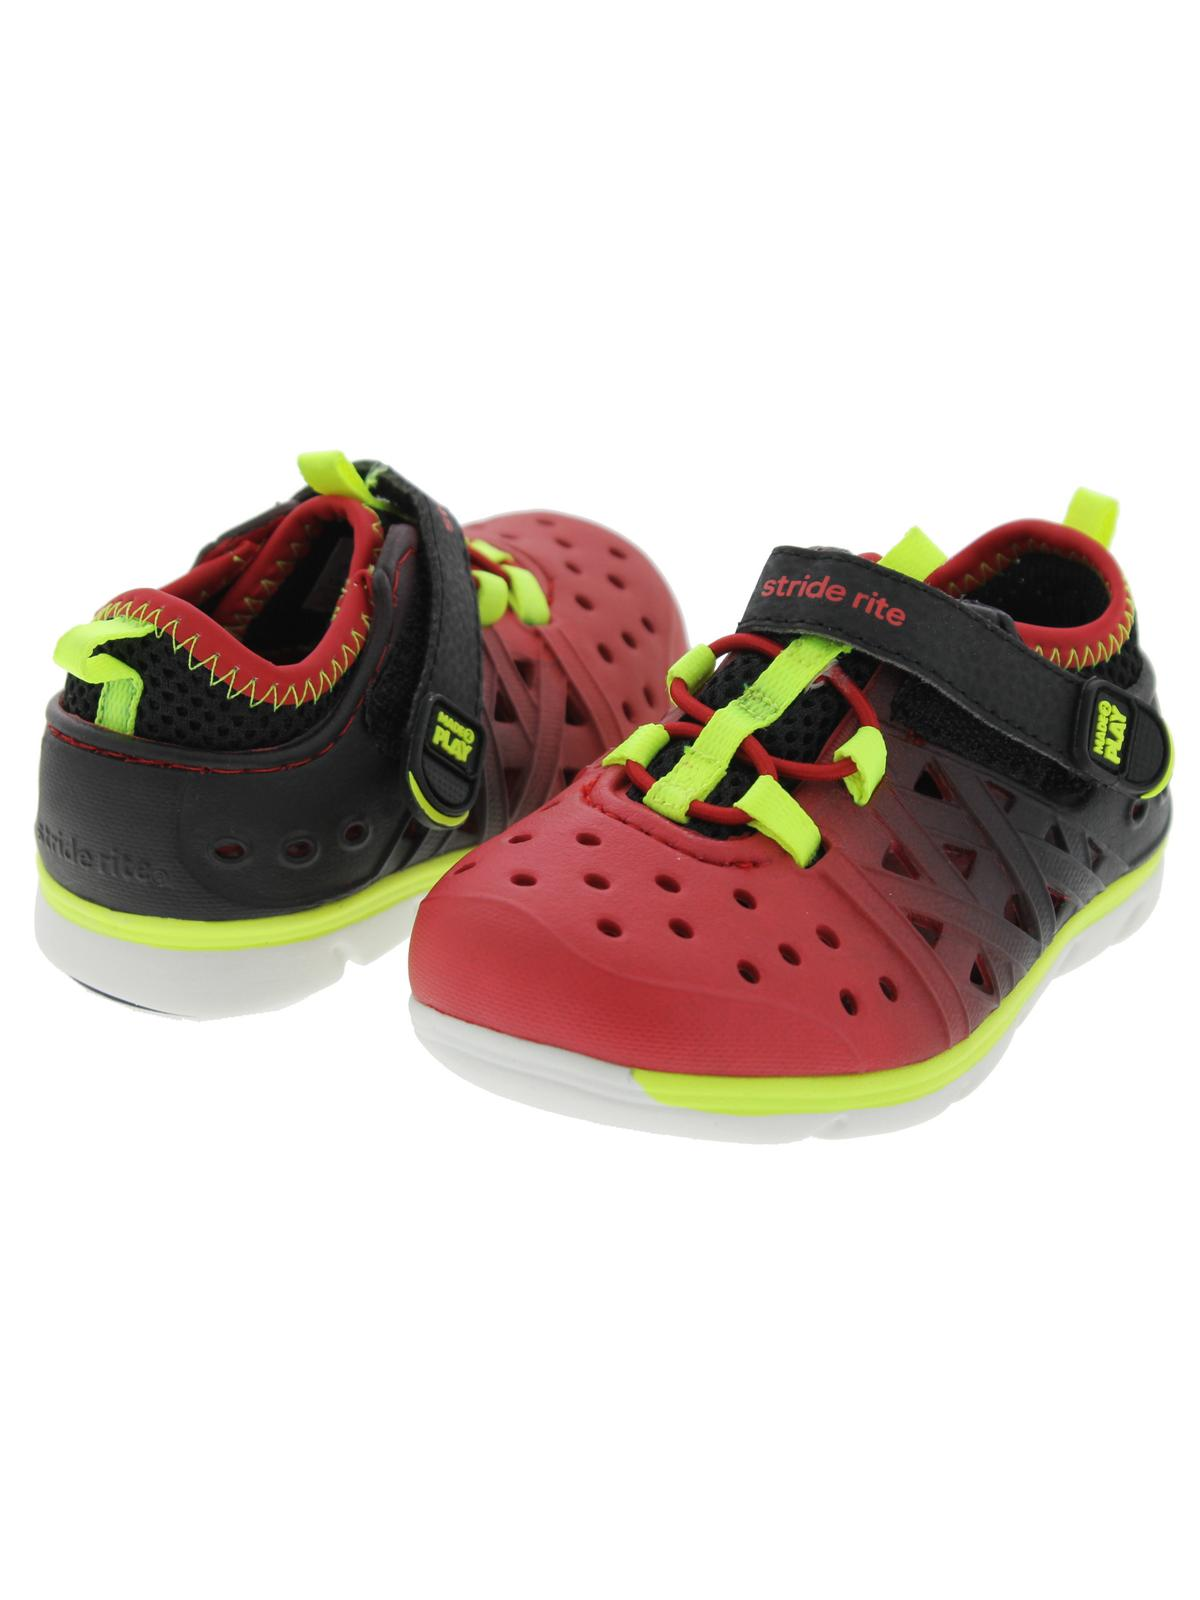 9556af8f91a9 Stride Rite - Stride Rite Made 2 Play Phibian Boys Black Red Water Shoes -  Walmart.com